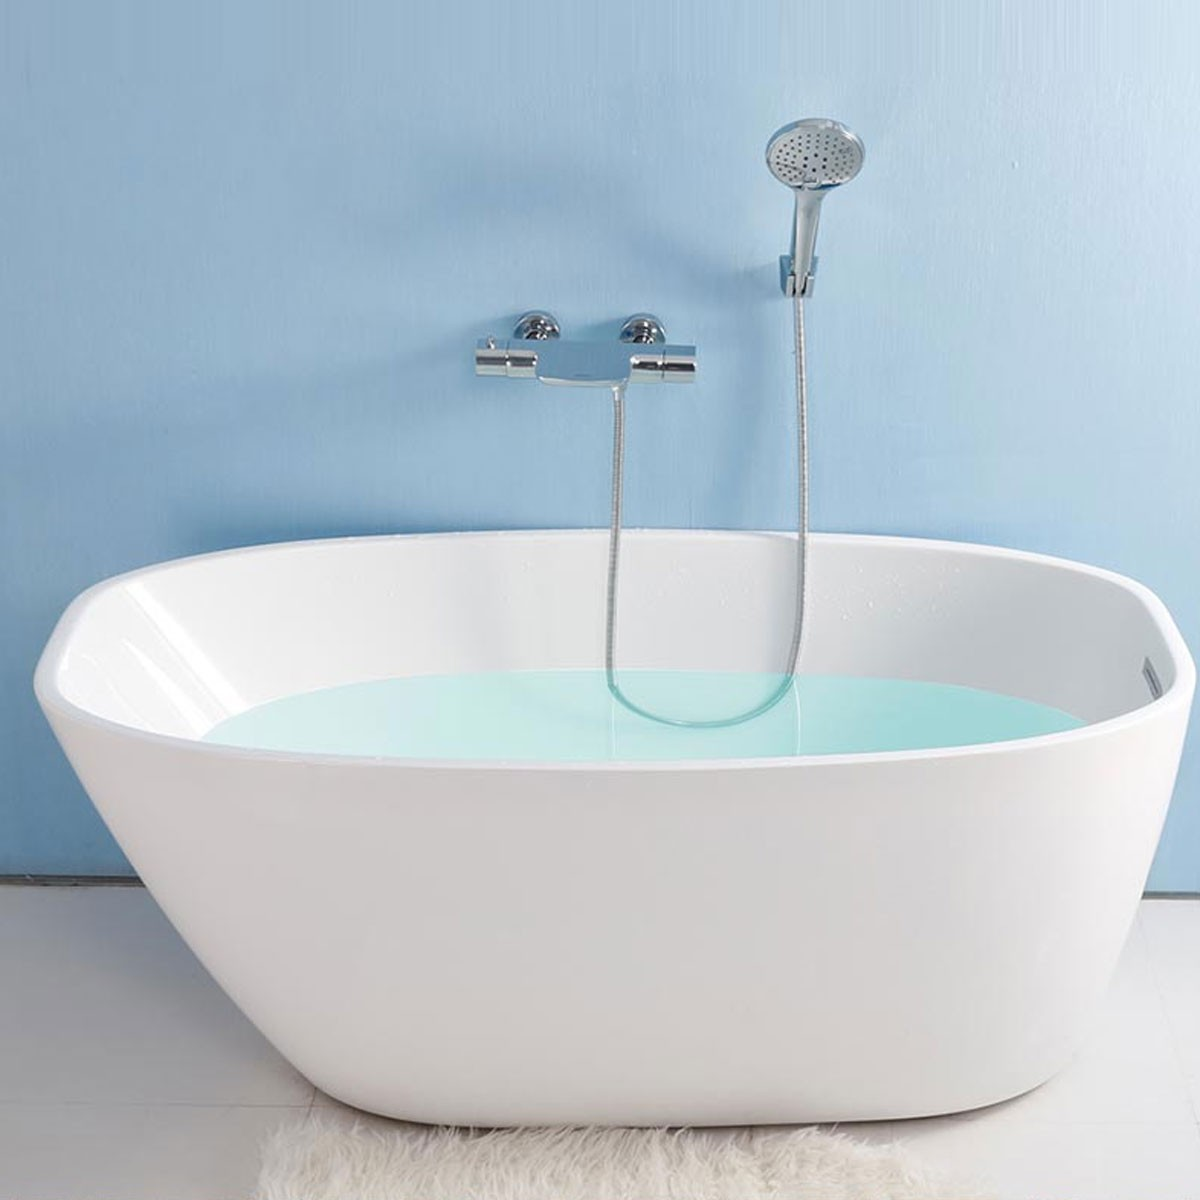 Free Standing Tub Canada - home decor - Komachi.us